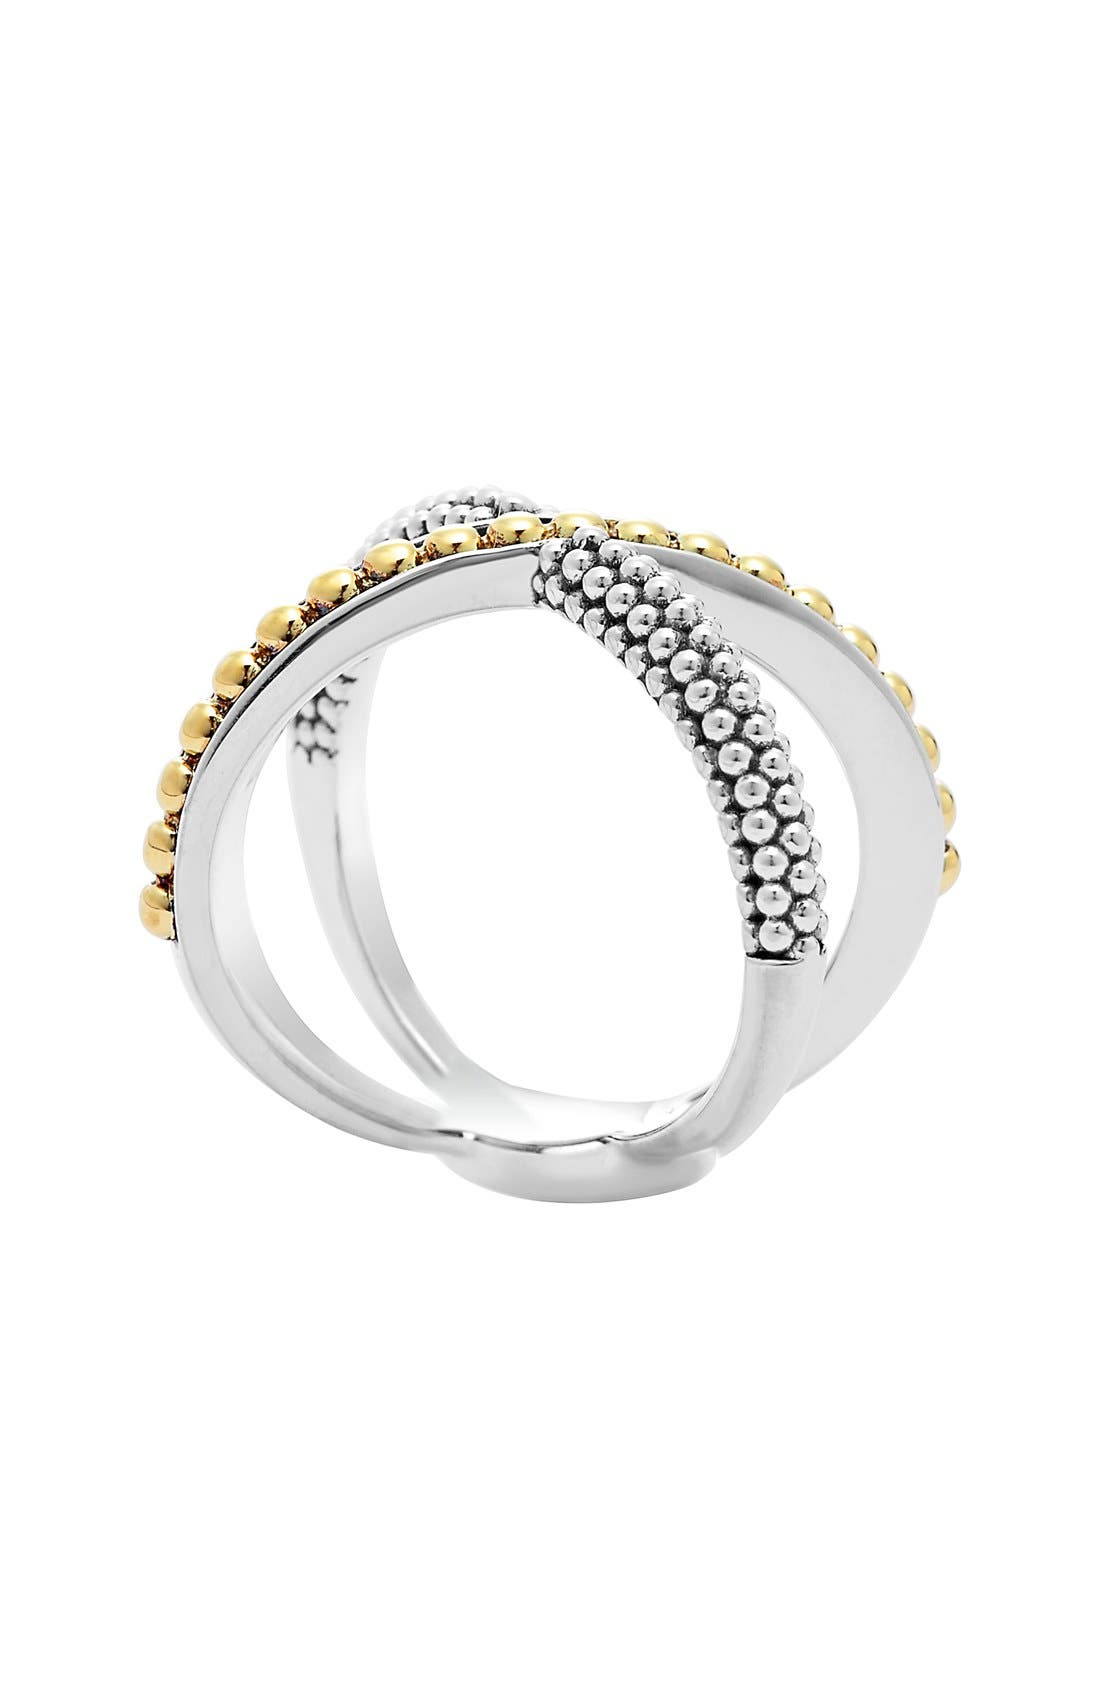 'Enso' Caviar Crossover Ring,                             Alternate thumbnail 4, color,                             SILVER/ GOLD